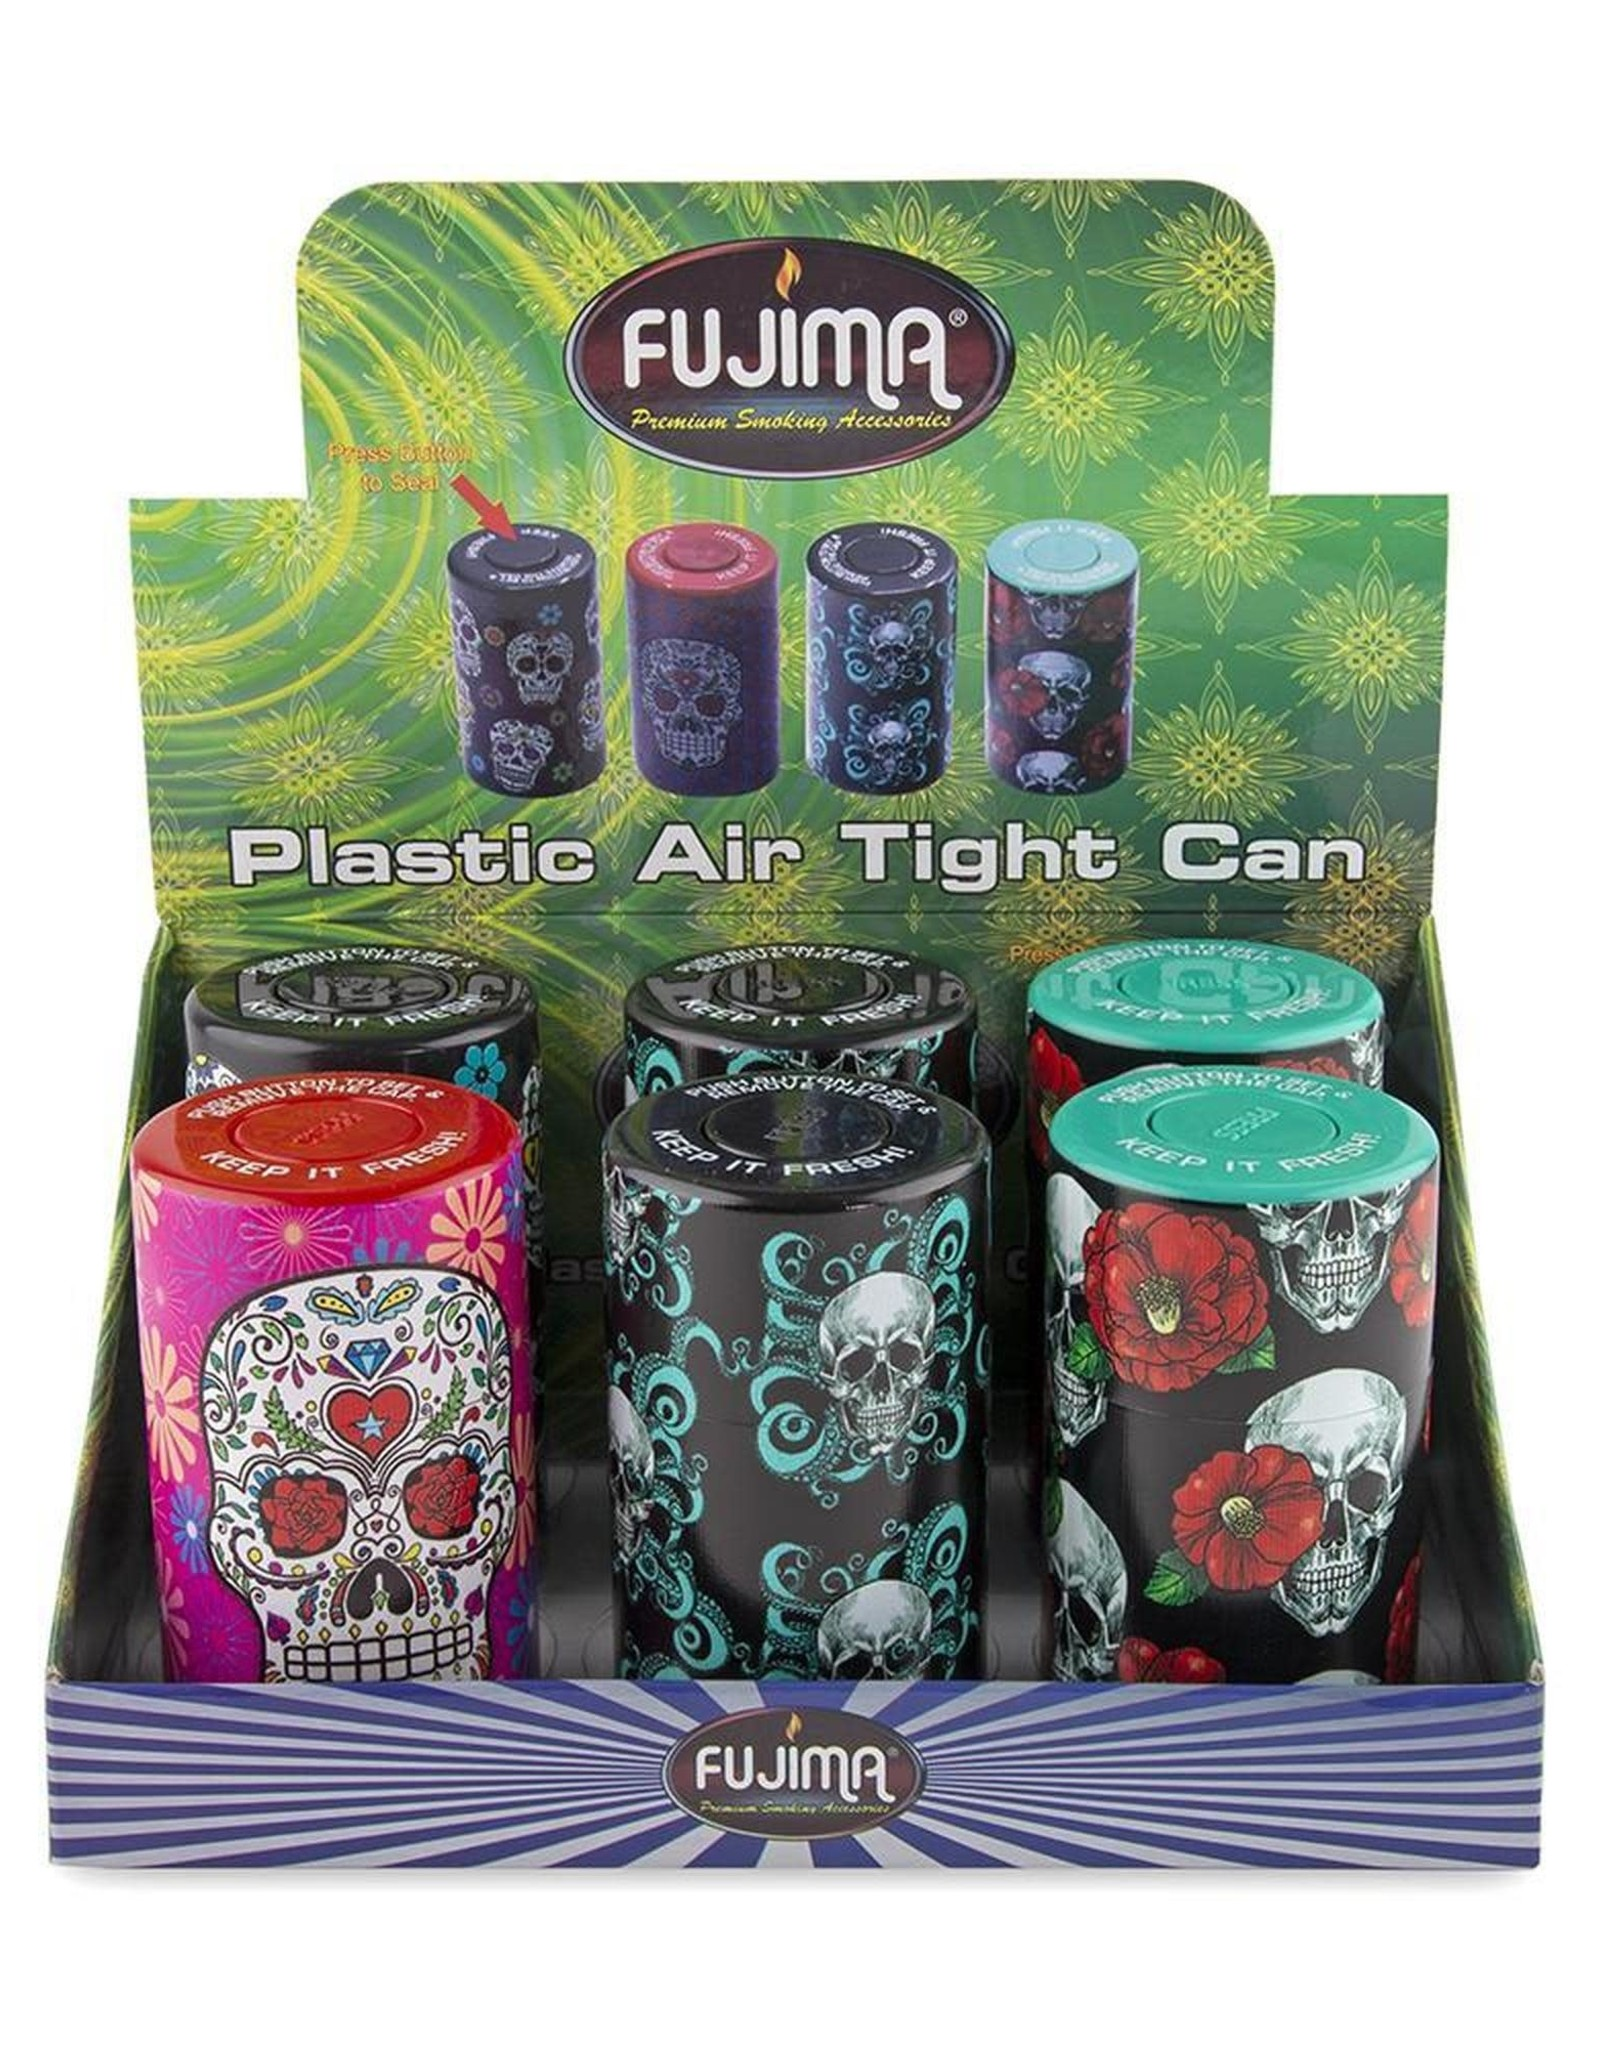 Fujima Plastic Air Tight Can